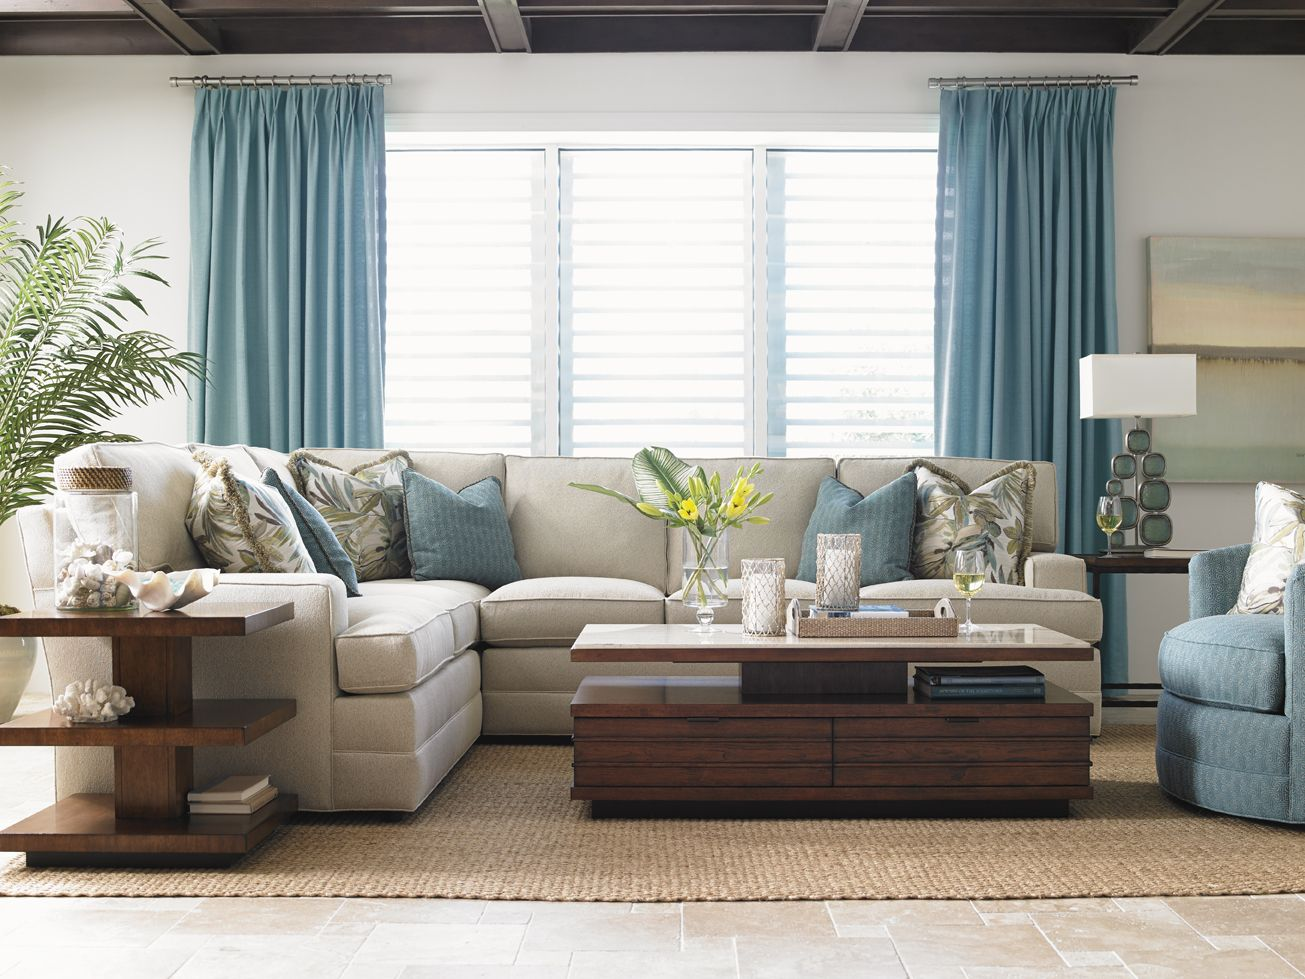 Recommended Sprintz Furniture For Best Furniture Ideas Family Pleasing Blue Curtain Designs Living Room Decorating Inspiration